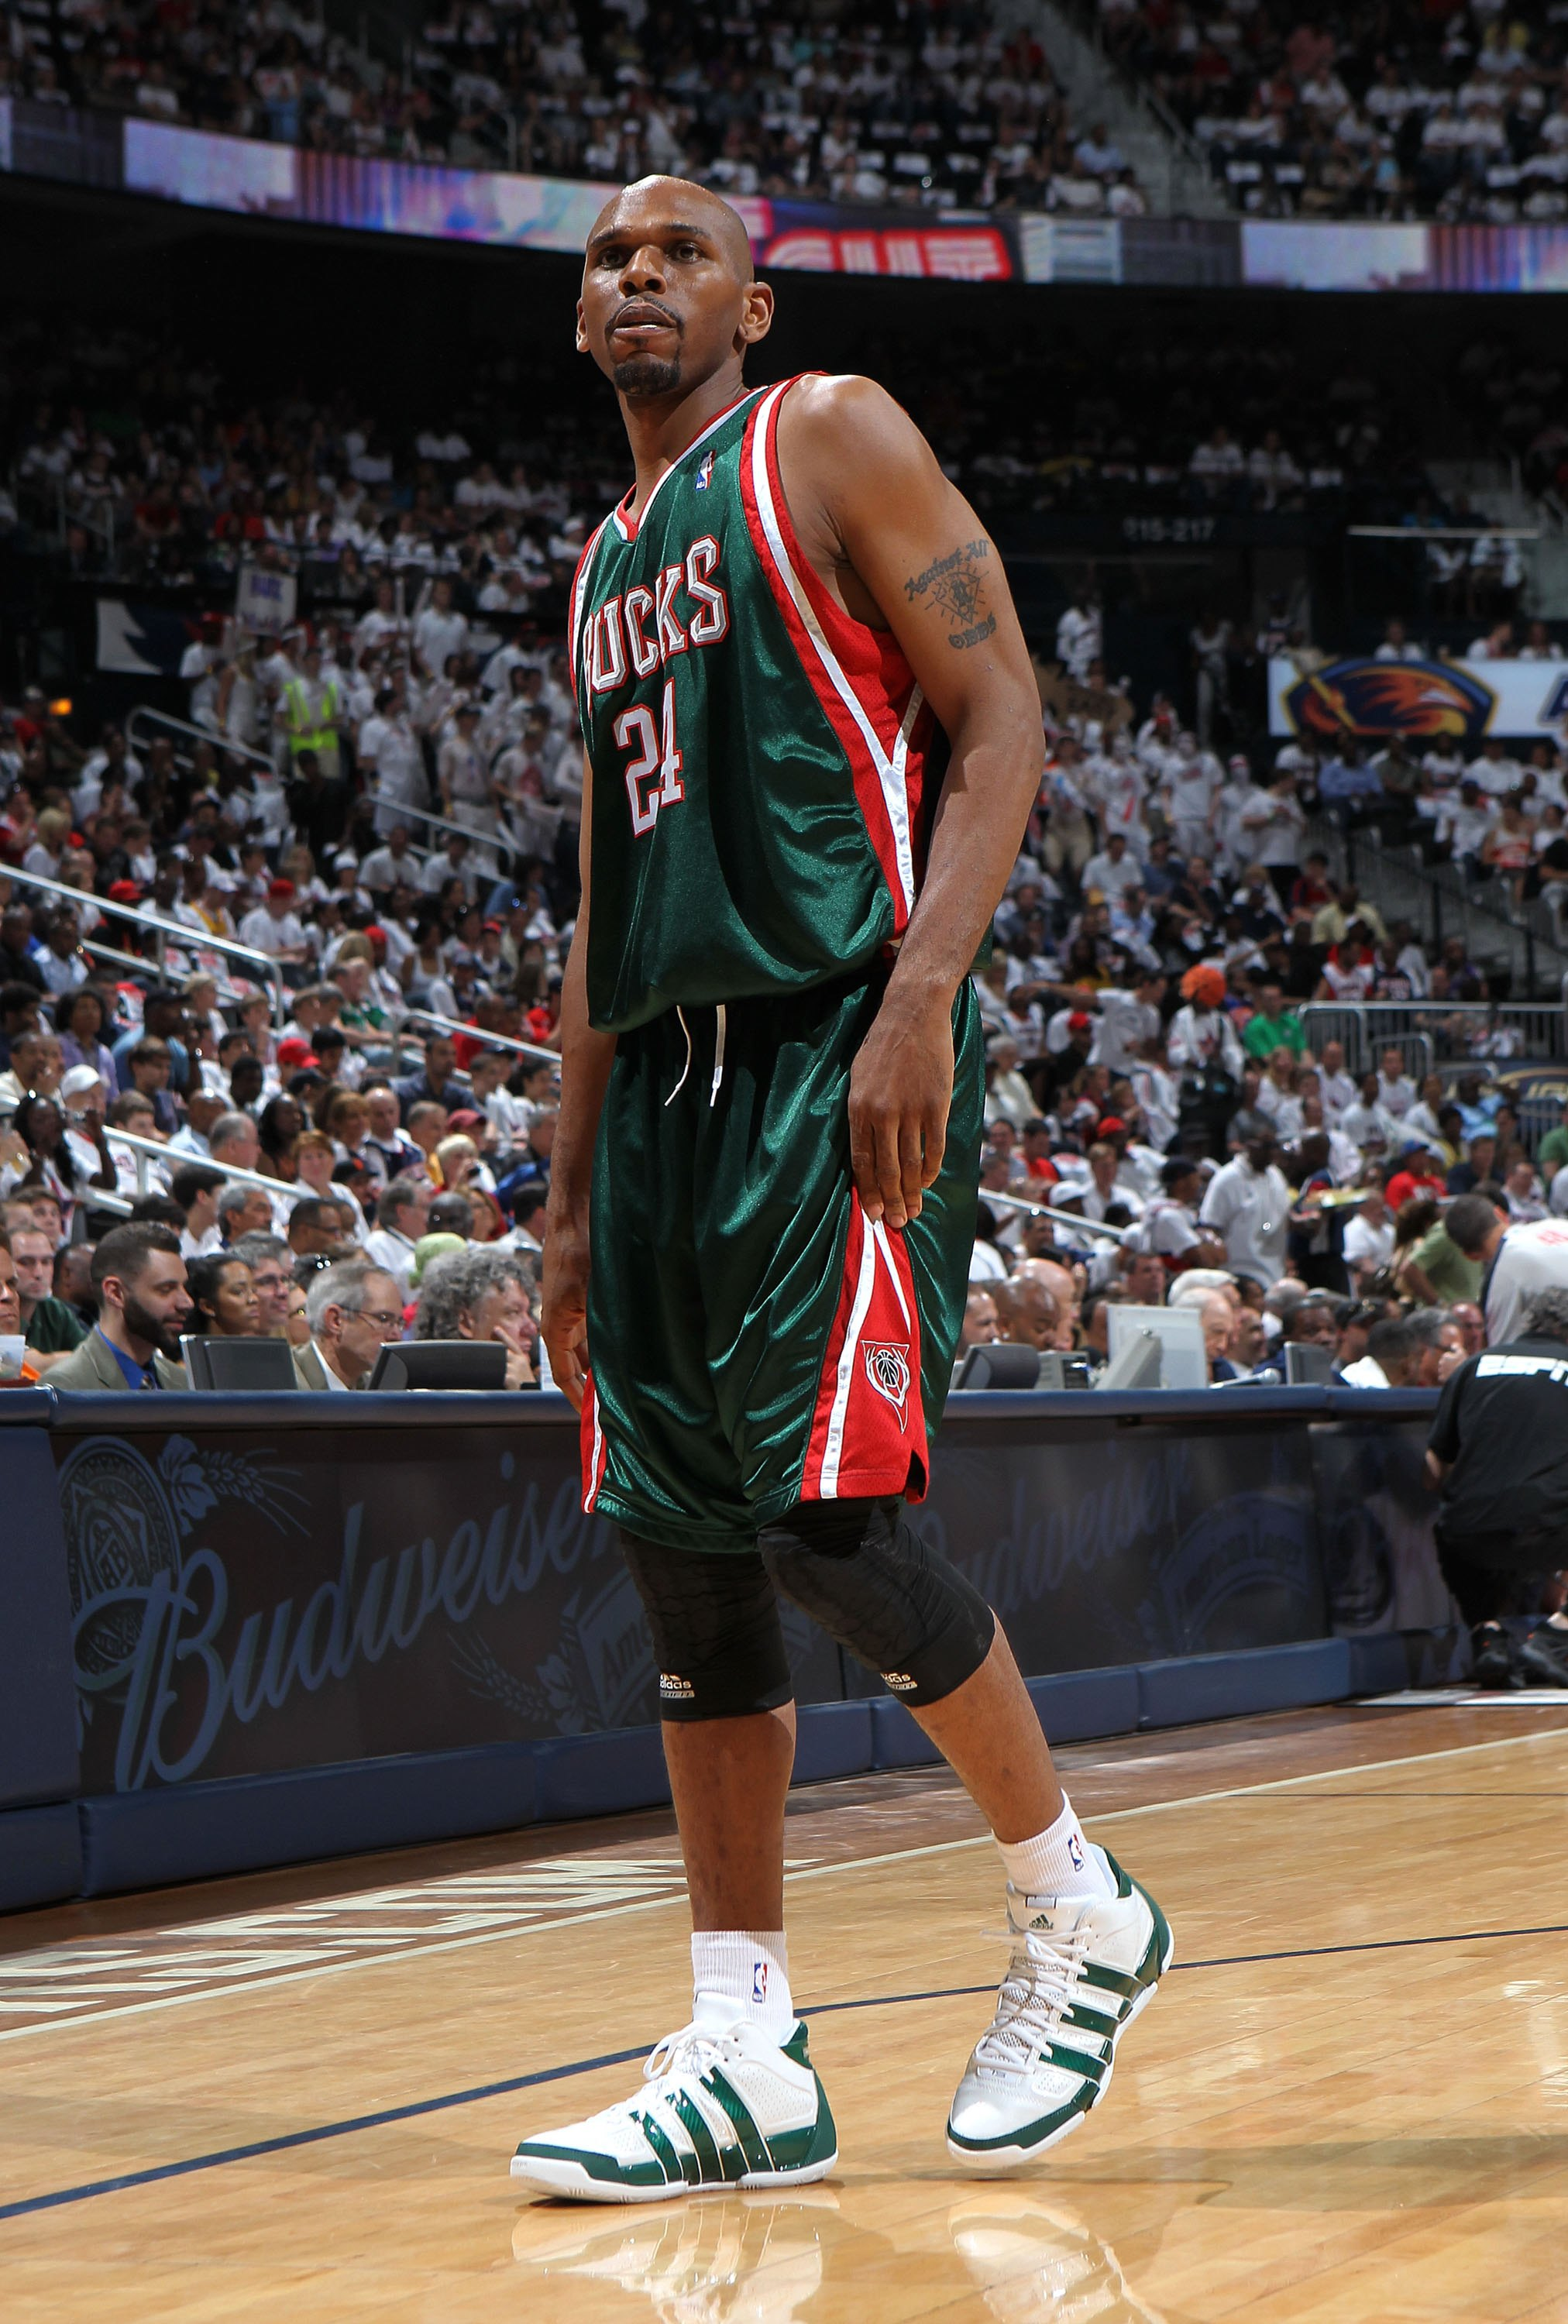 ATLANTA - MAY 2:  Guard Jerry Stackhouse #24 of the Milwaukee Bucks looks at the scoreboard during Game Seven of the Eastern Conference Quarterfinals between the Milwaukee Bucks and the Atlanta Hawks during the 2010 NBA Playoffs at Philips Arena on May 2,